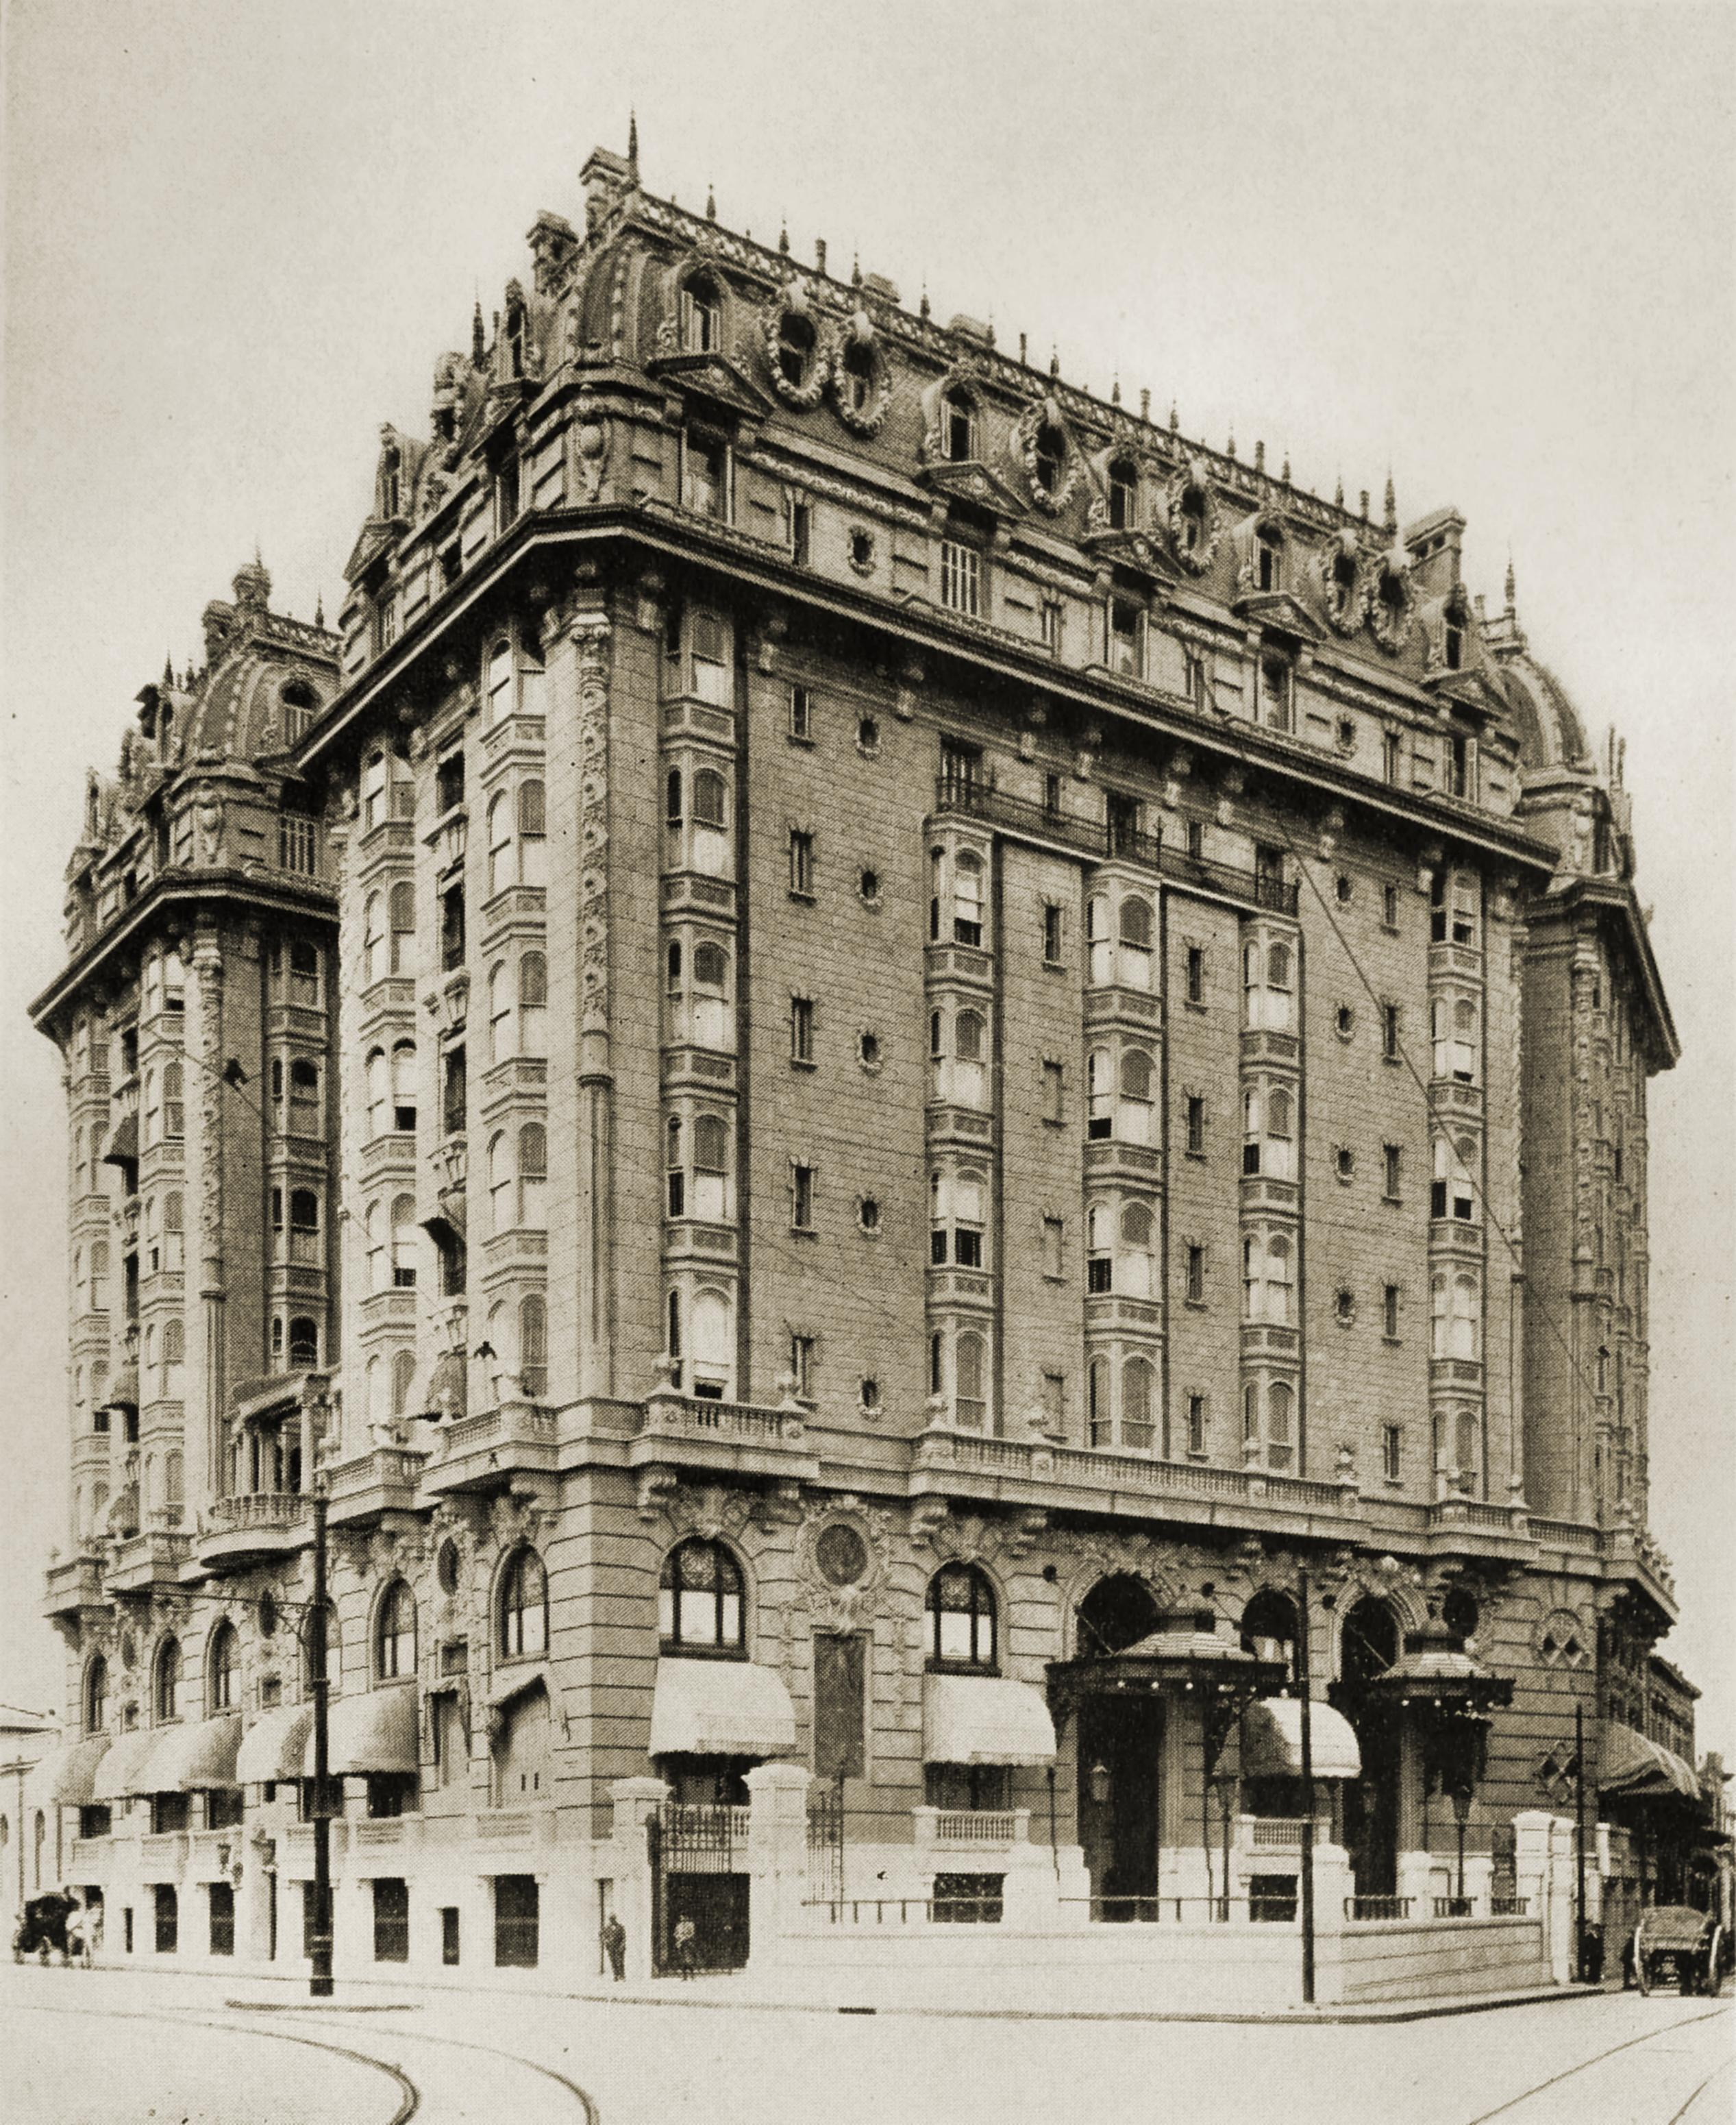 Plaza Hotel, Buenos Aires, Argentina about 1917